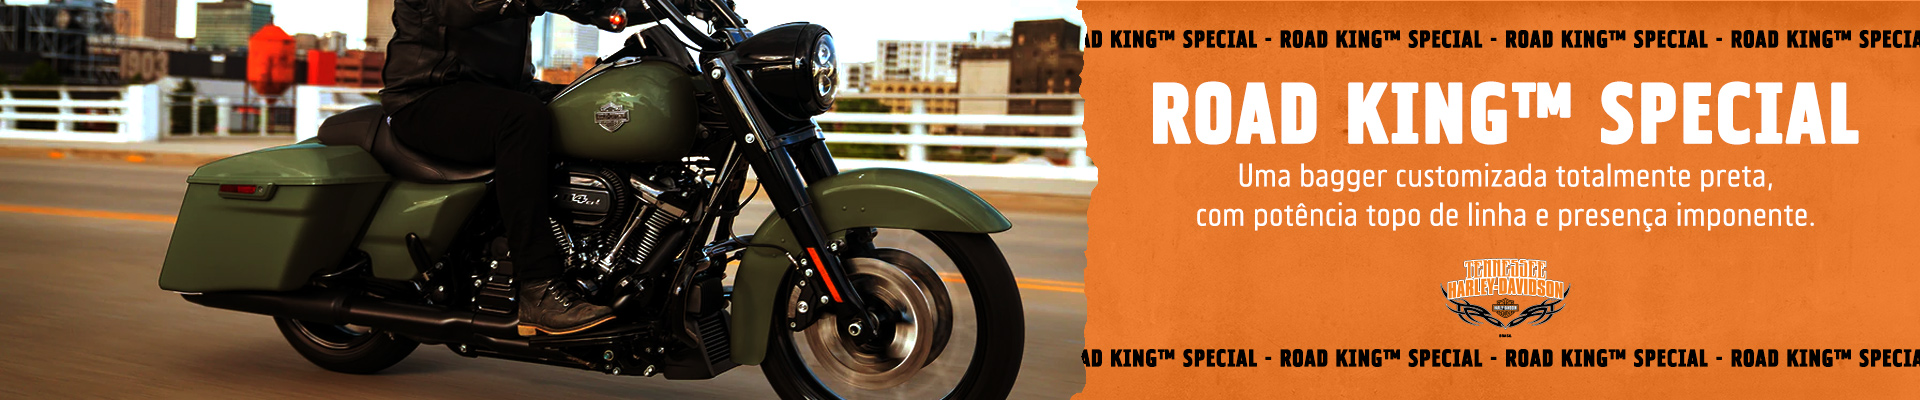 Banner Road King® Special